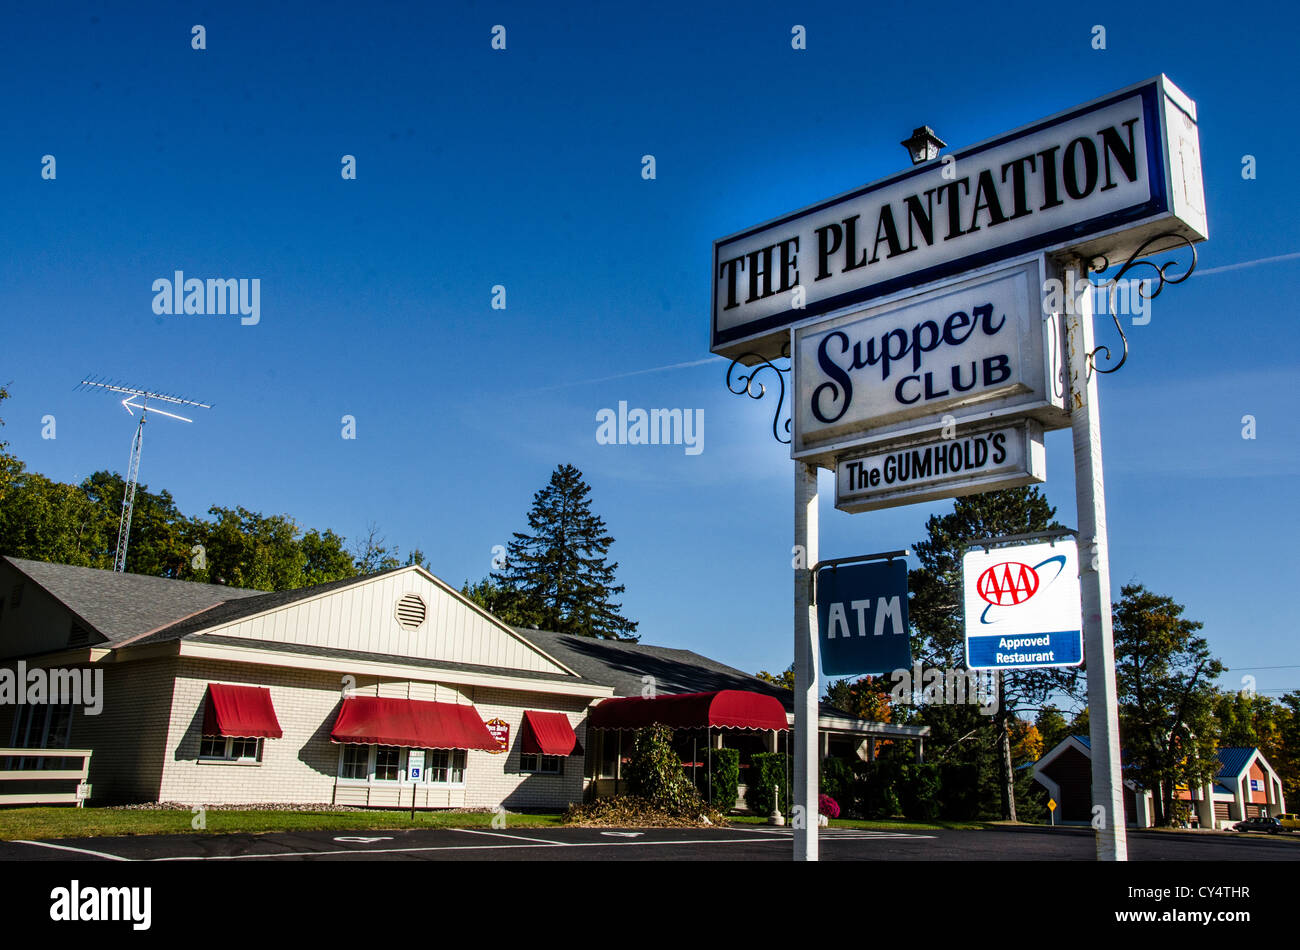 The Plantation Supper Club in Arbor Vitae in the Northwoods area of Wisconsin. - Stock Image